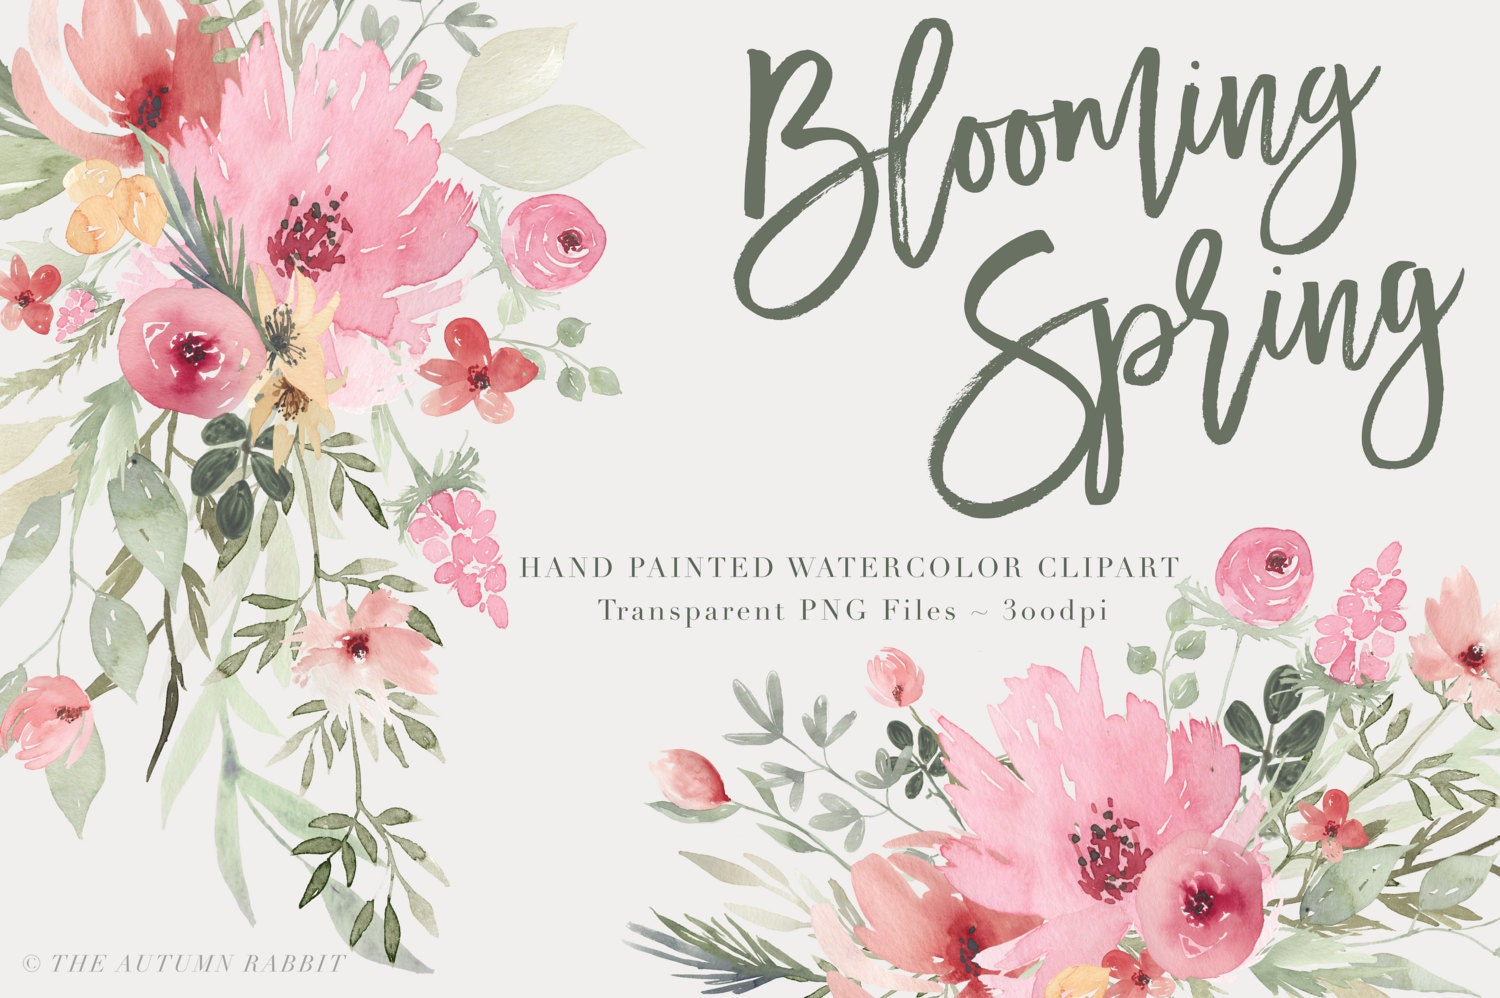 Watercolor flowers clipart files high res transparent png - High resolution watercolor flowers ...